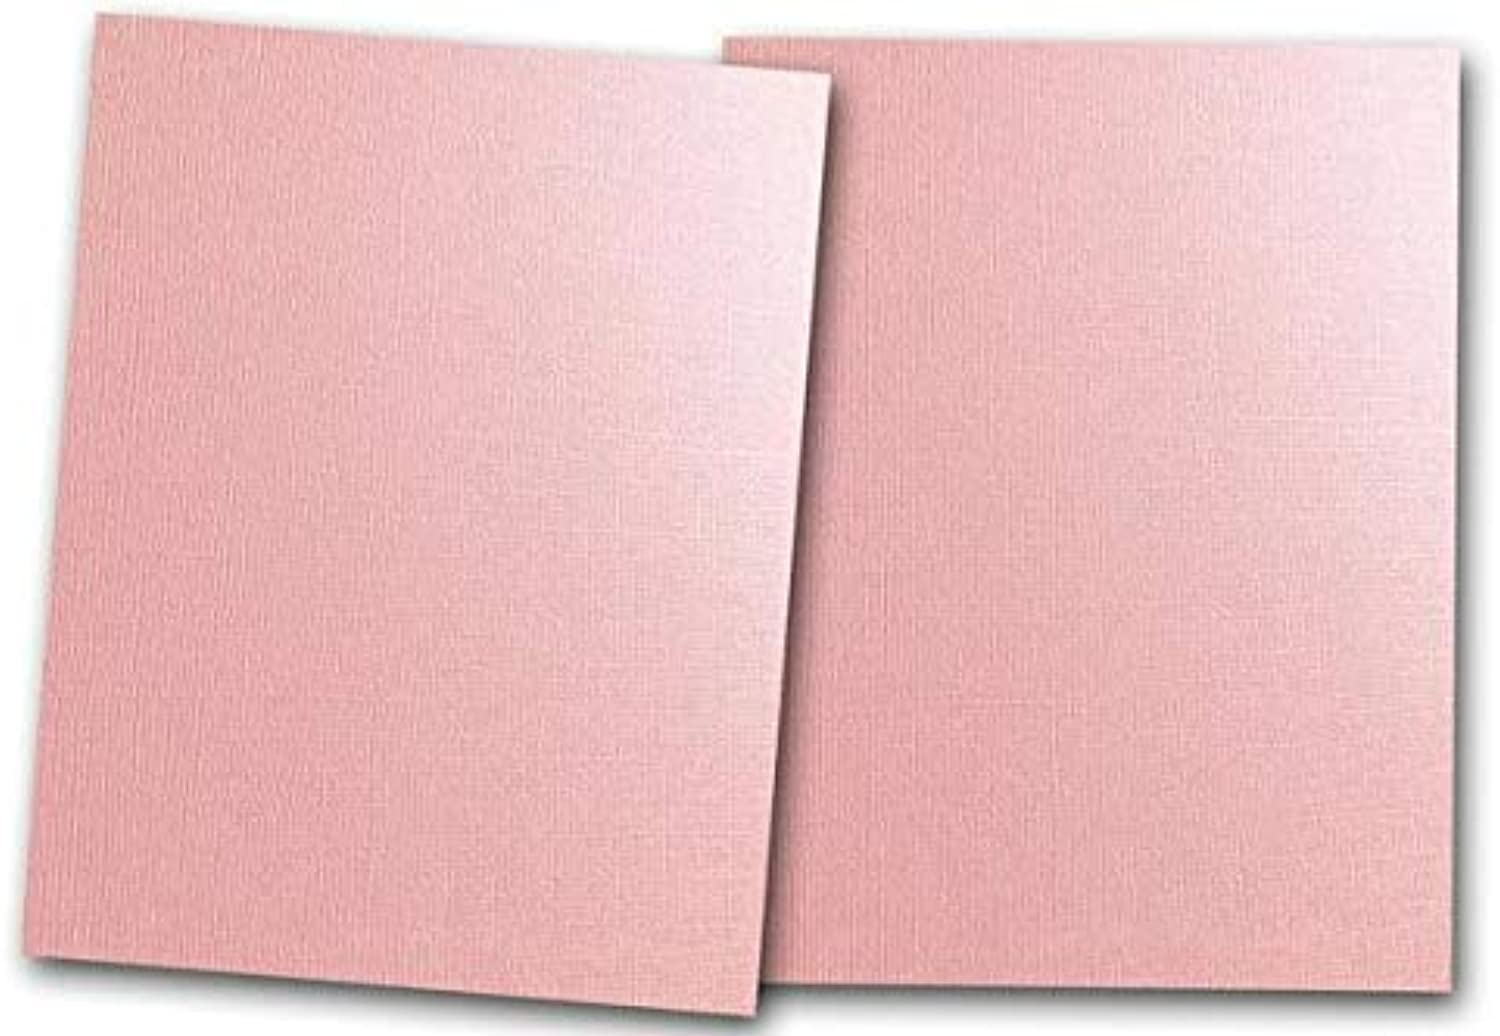 Premium Pearlized Metallic Textured Pink Taffeta Card Stock 80 SheetsMatches Martha Stewart Pink TaffettaGreat for Scrapbooking Crafts Flat Cards DIY Projects Etc. (5 x 7)